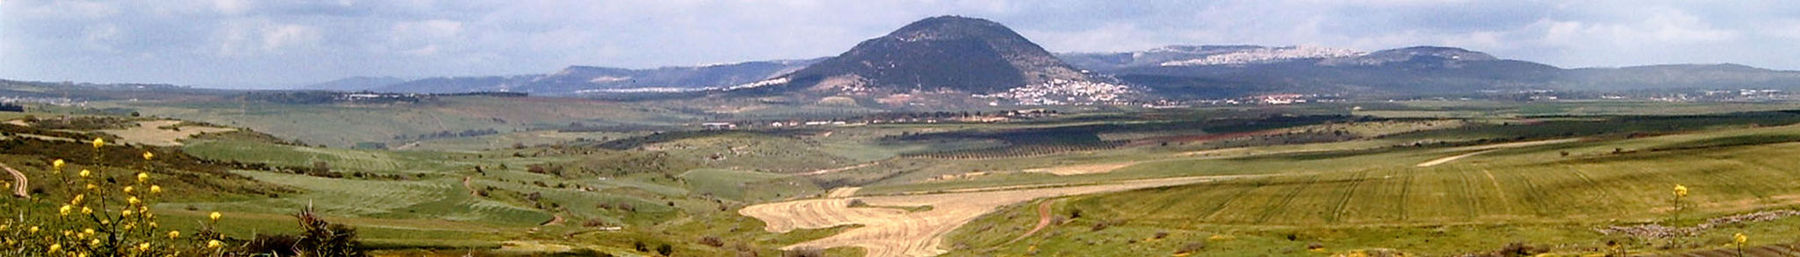 Lower Galilee Wikivoyage banner.jpg